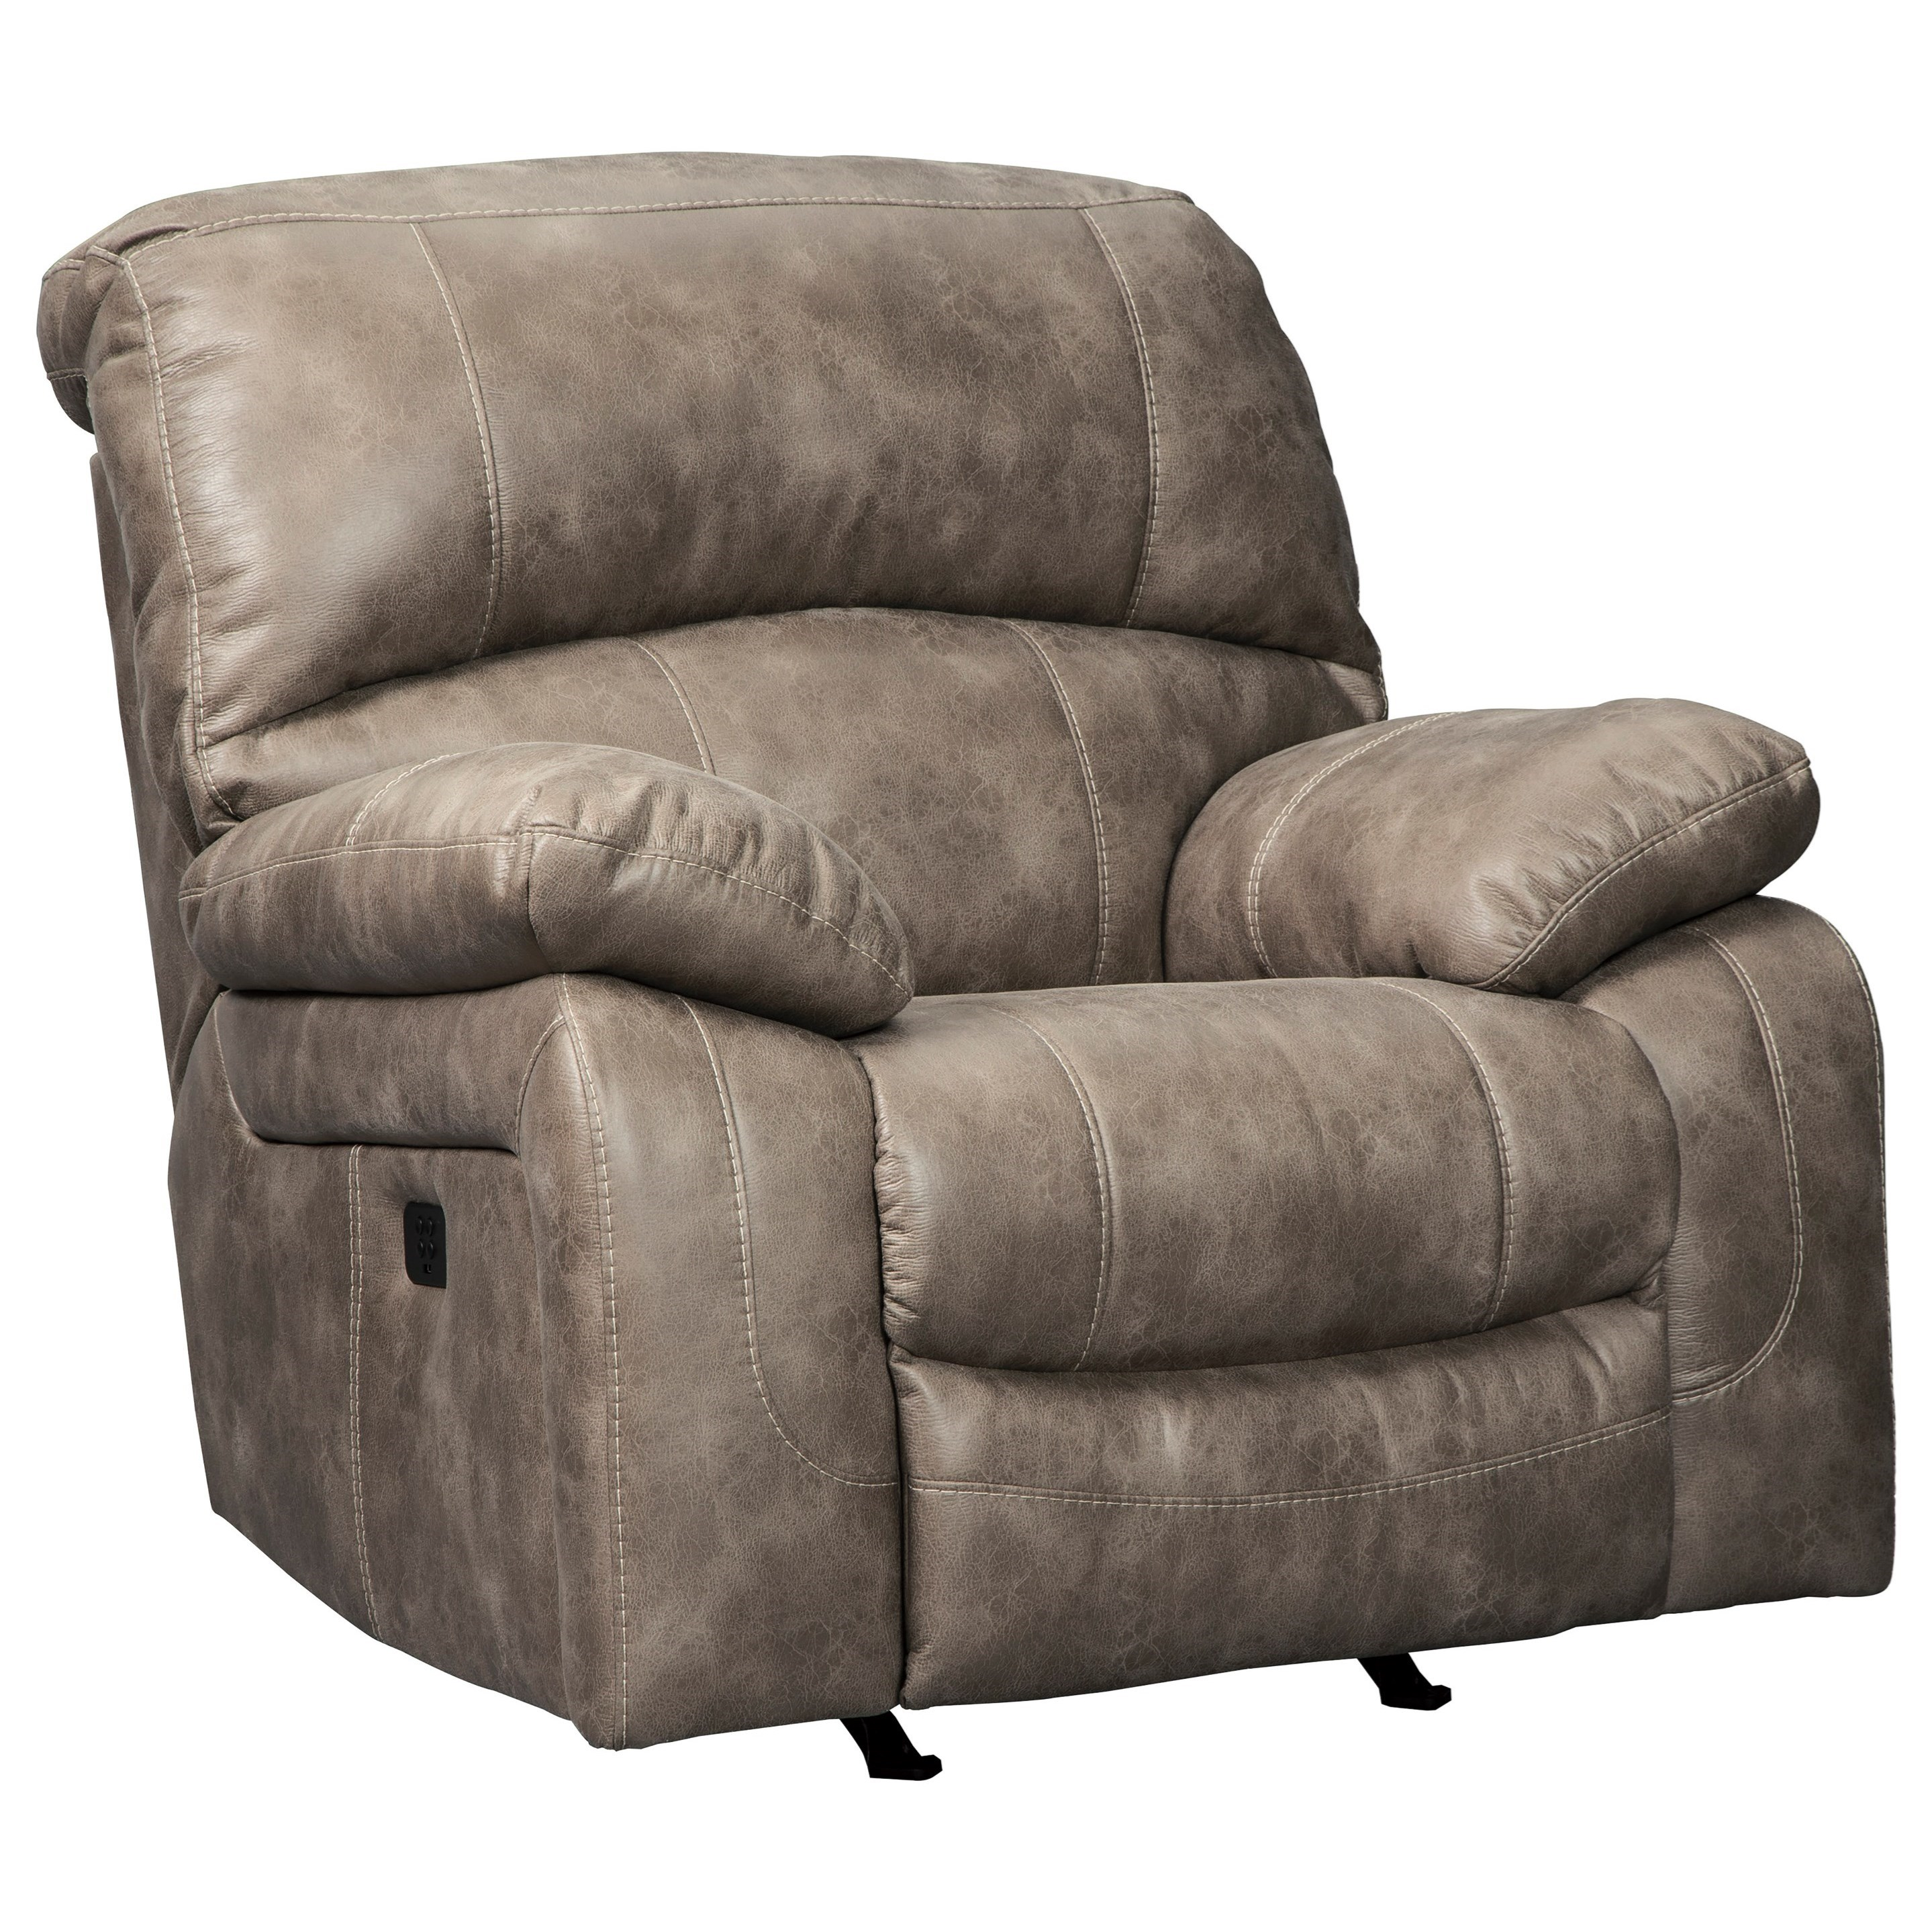 Dunwell Recliner by Ashley Furniture